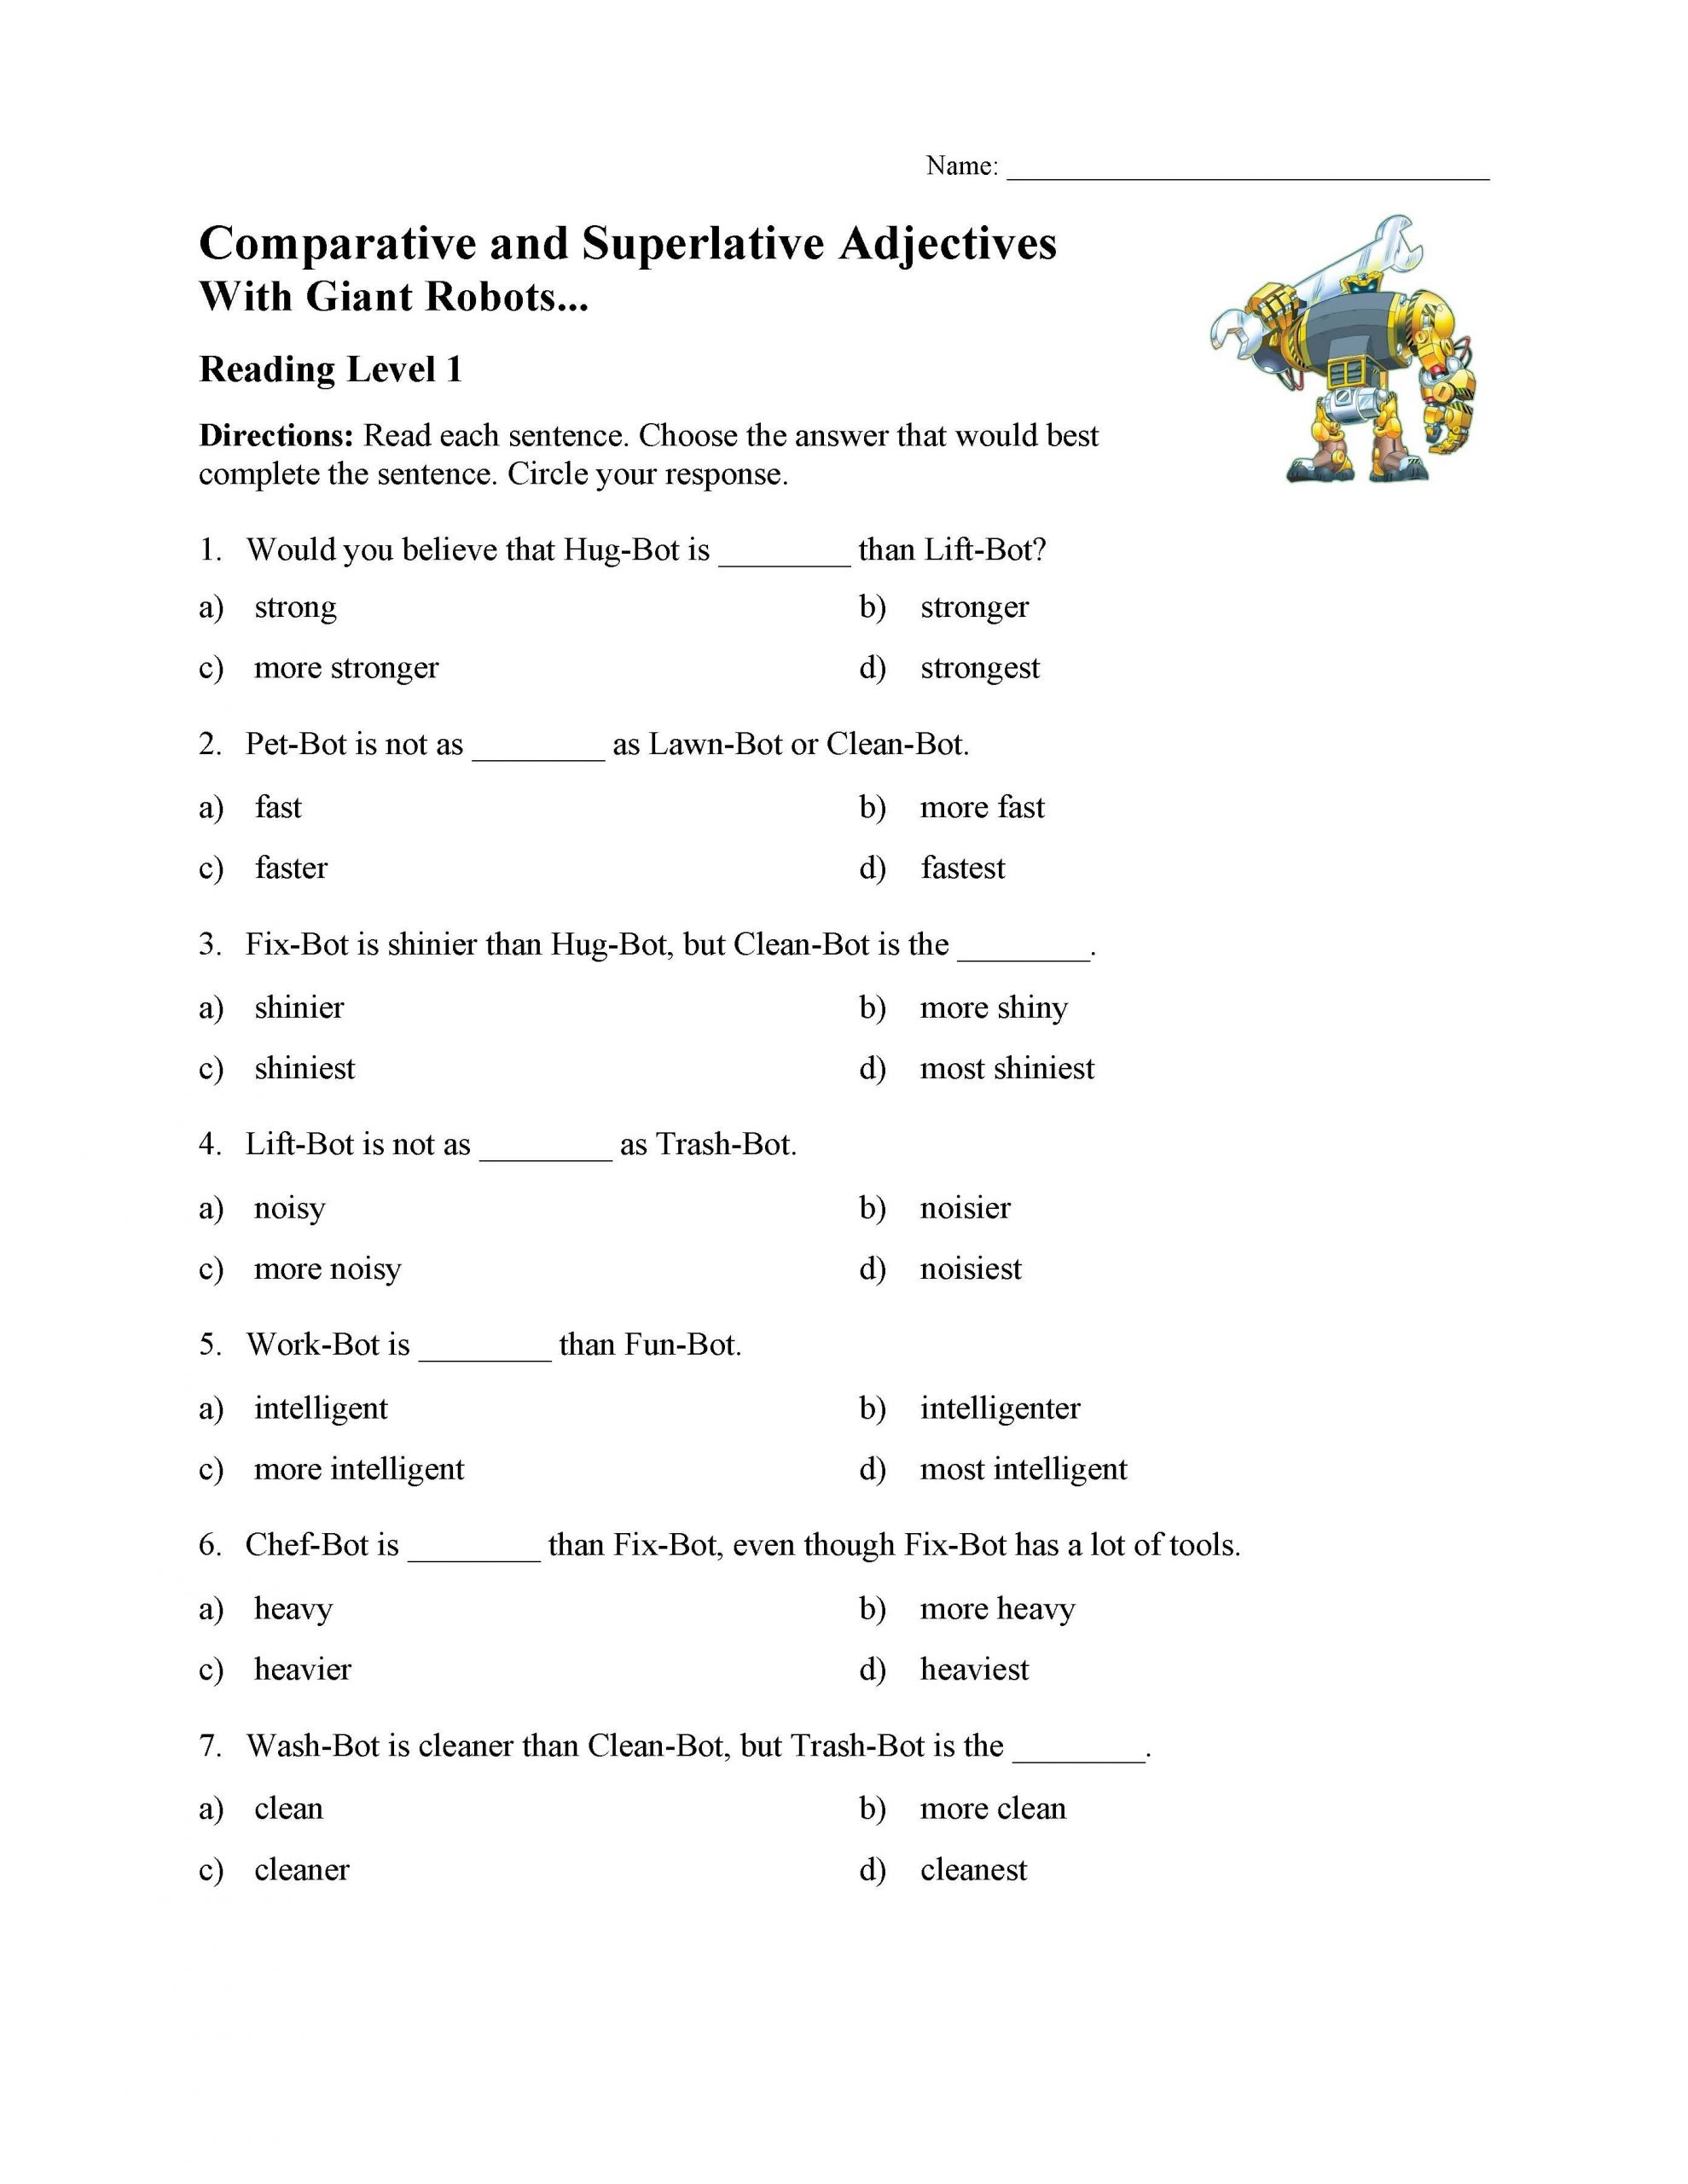 Adjectives Worksheets 3rd Grade Parative and Superlative Adjectives Test with Giant